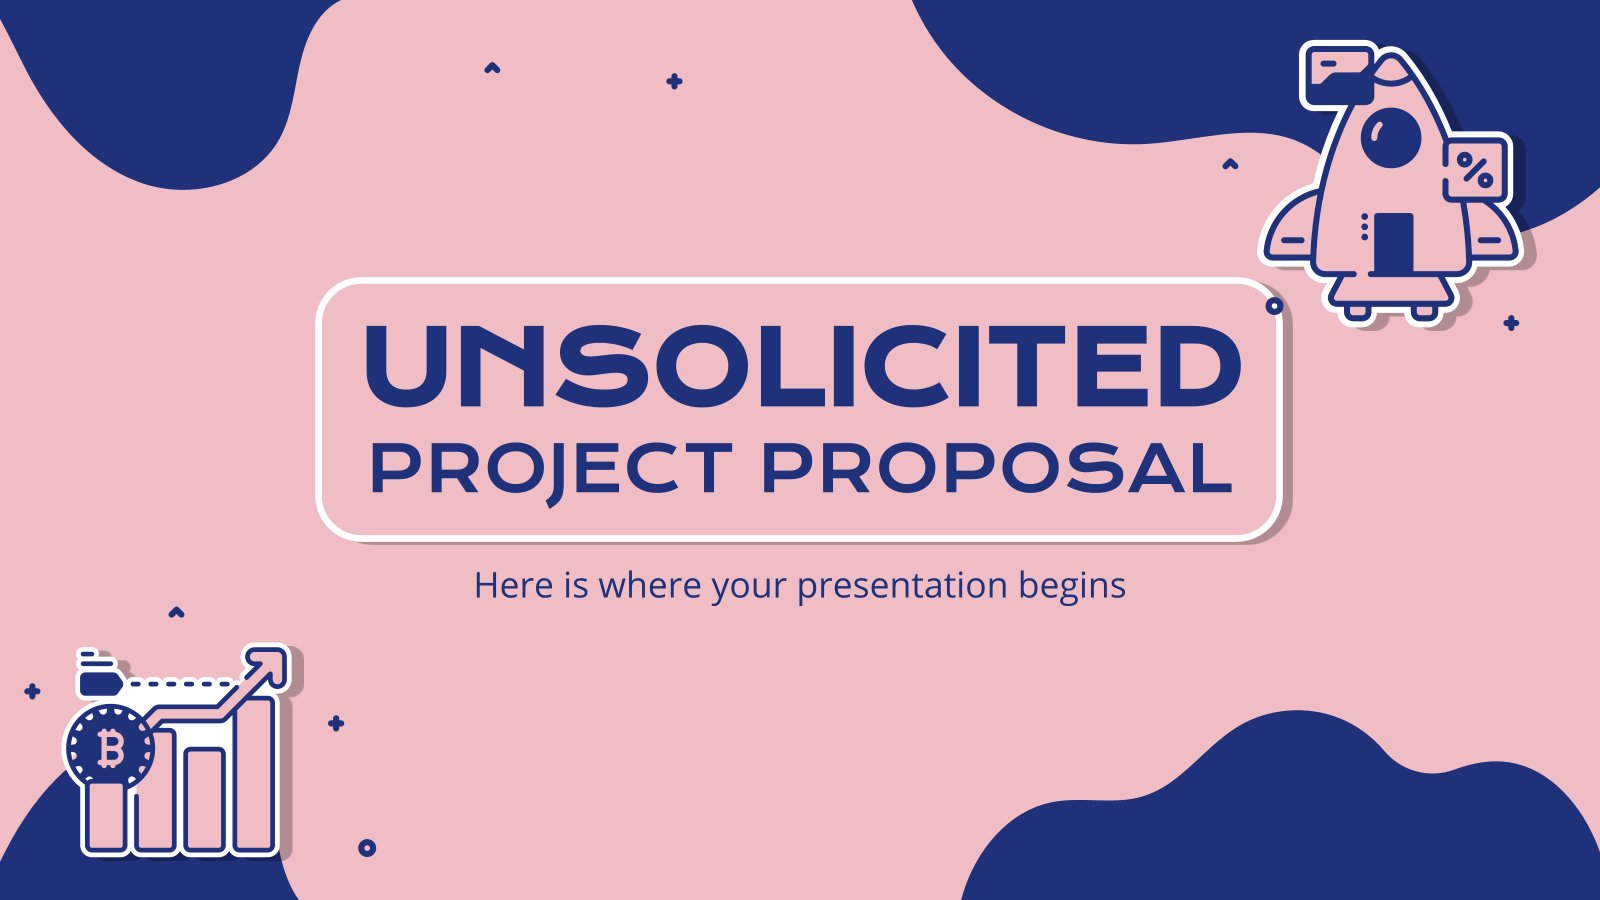 Unsolicited Project Proposal presentation template